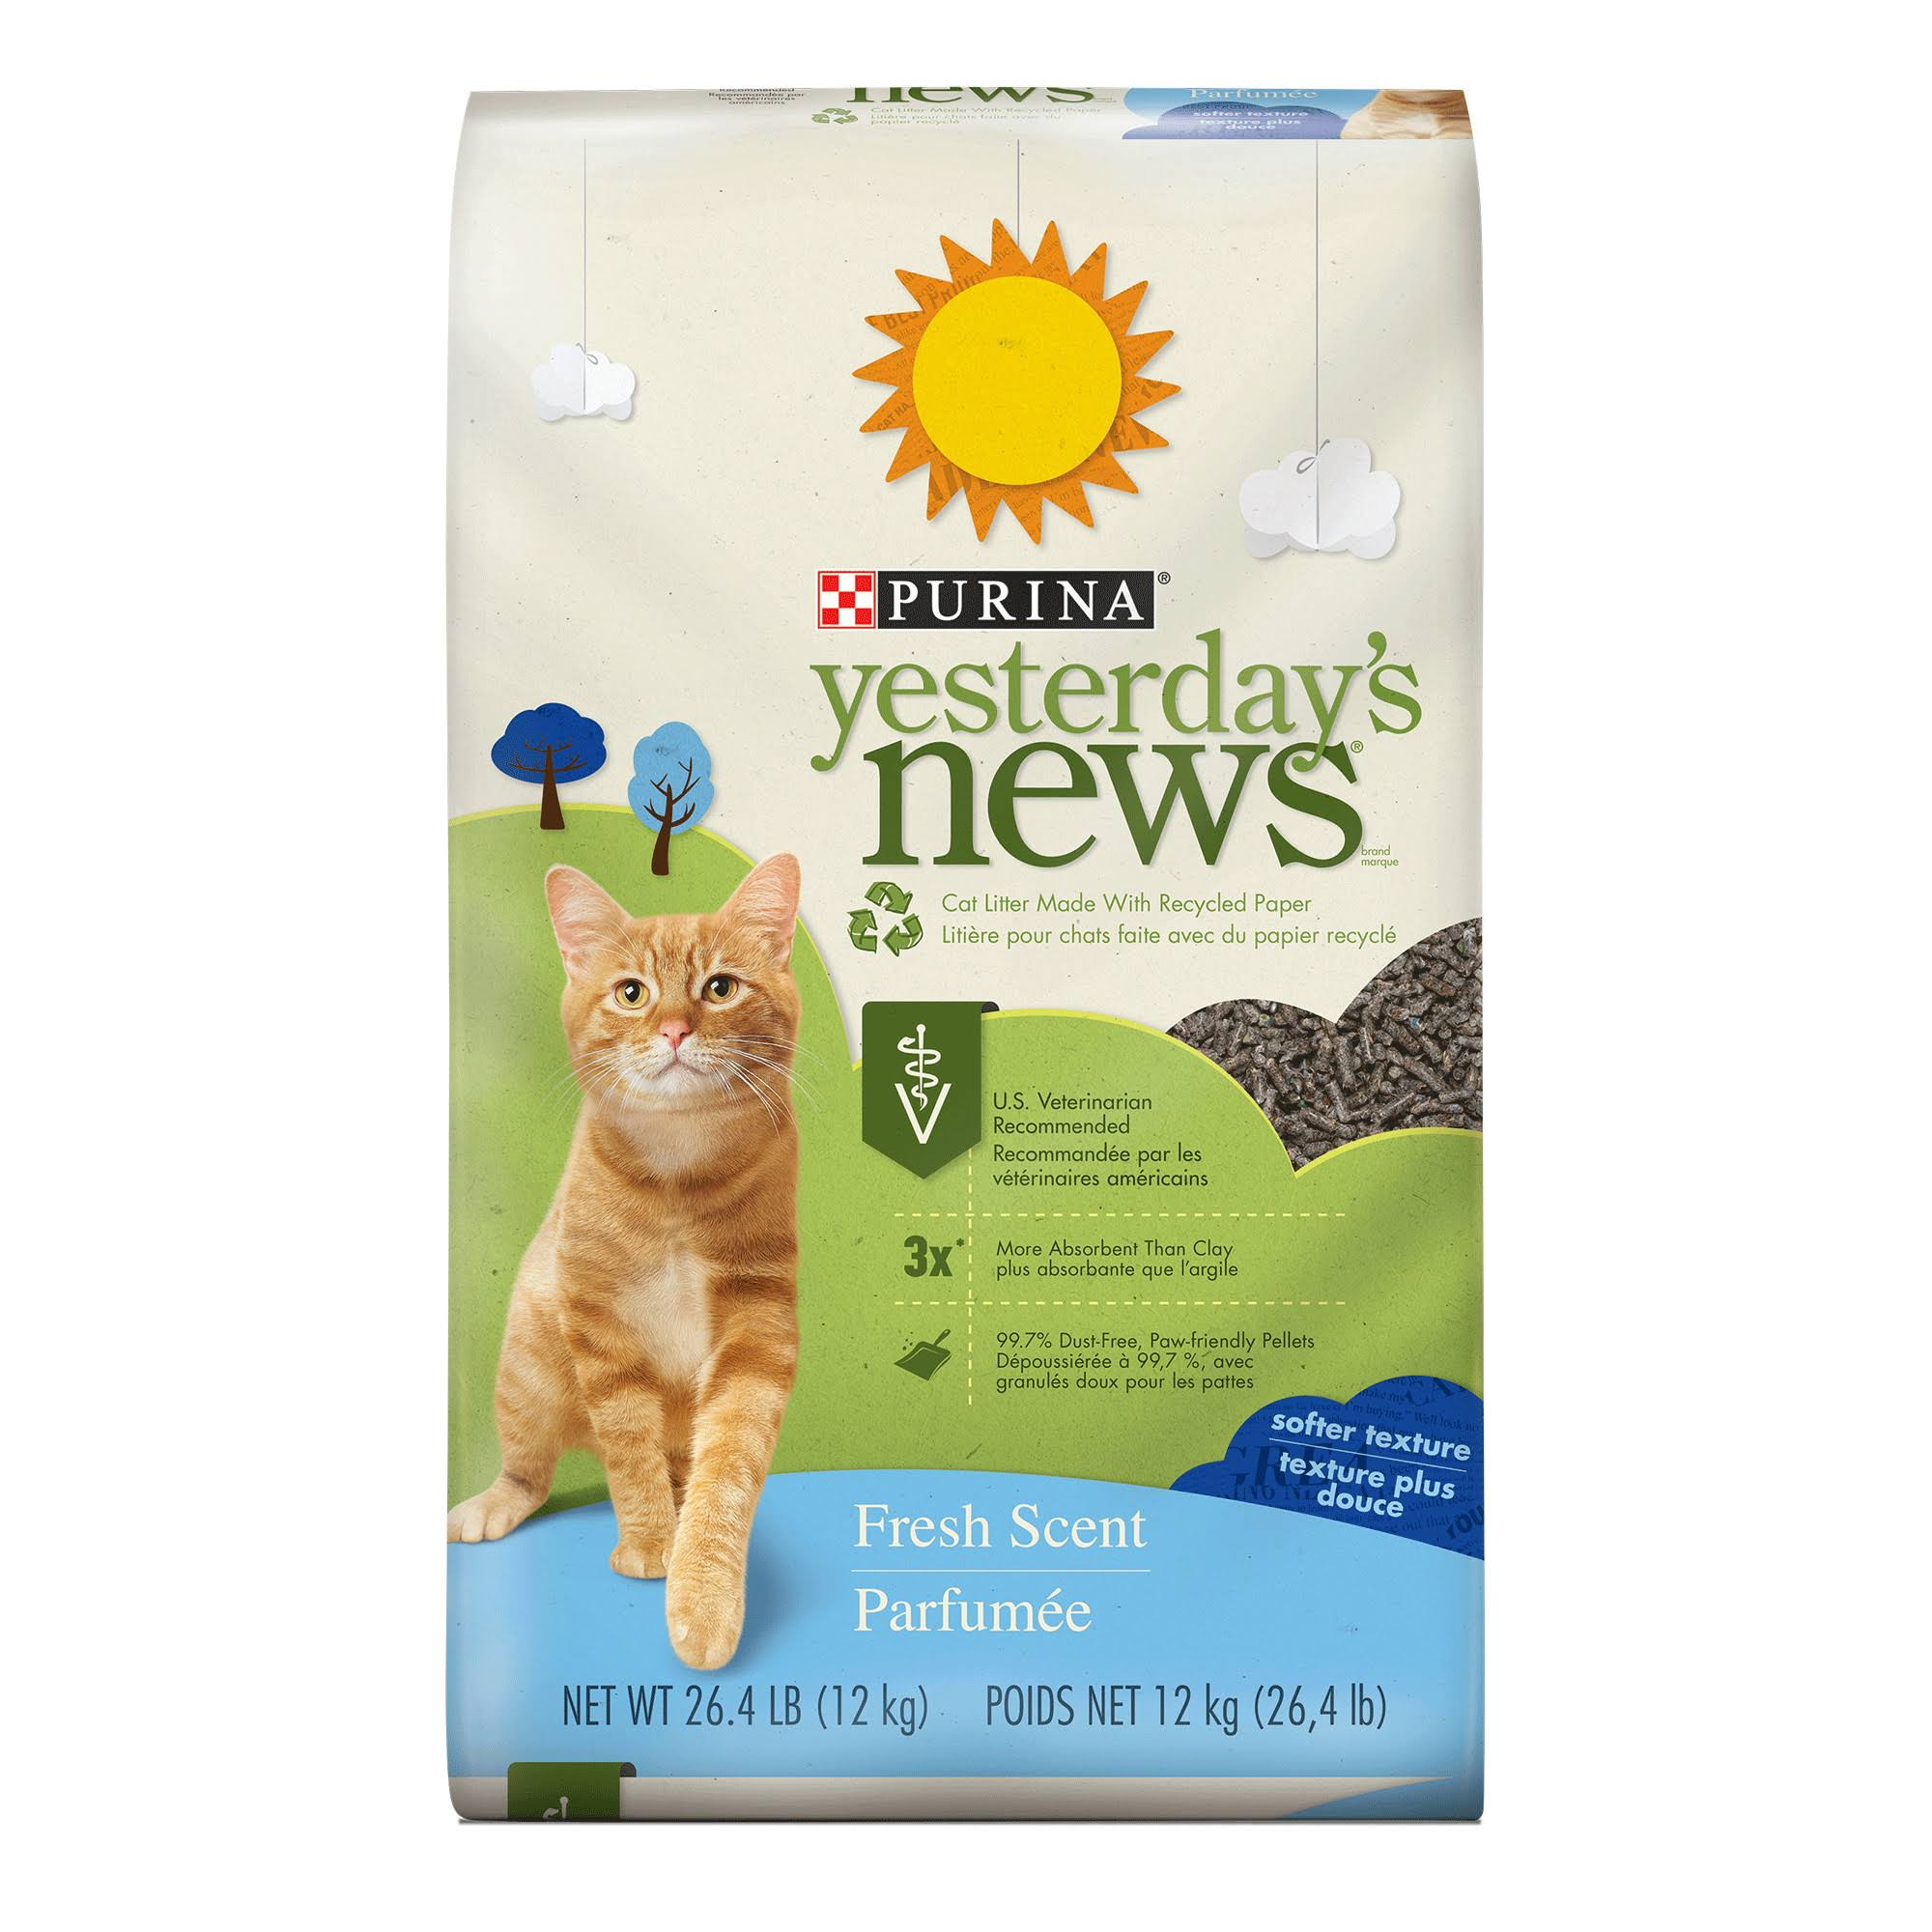 Purina Yesterday's News Cat Litter - 26.4 lb, Fresh Scent